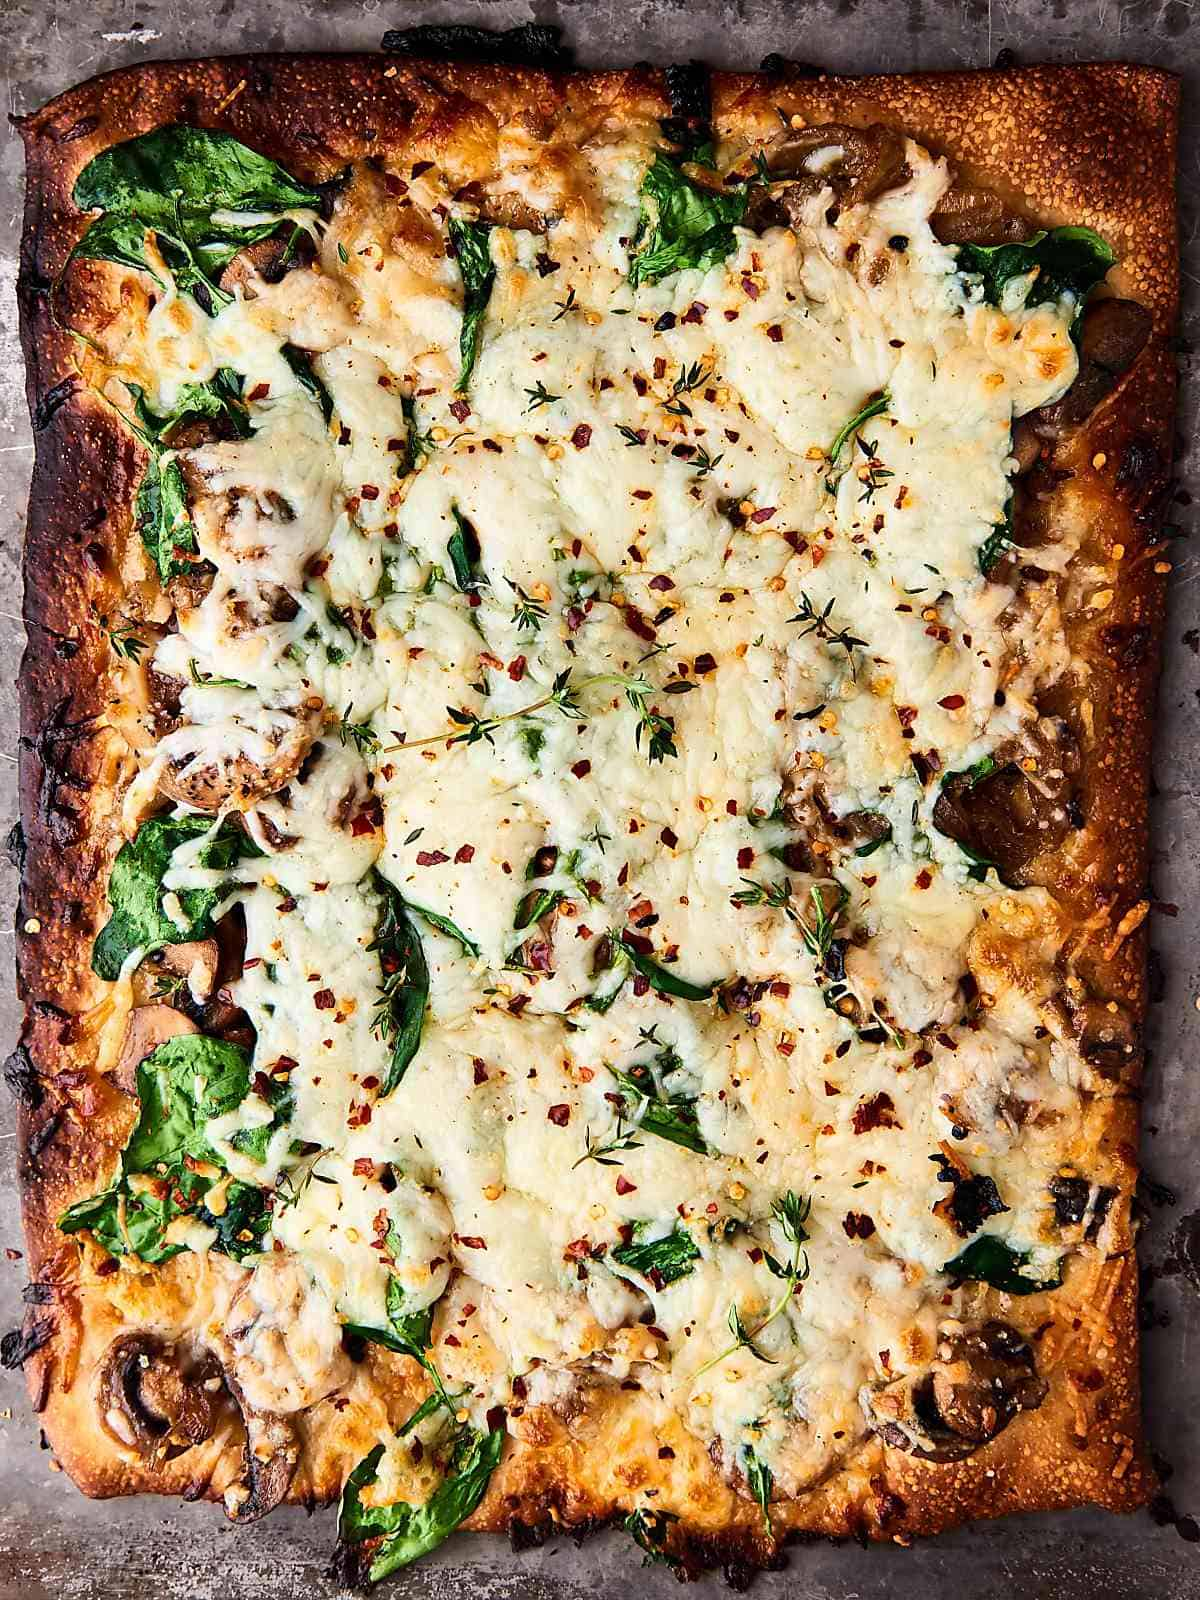 Rectangle pizza with cheese, mushrooms and herbs.